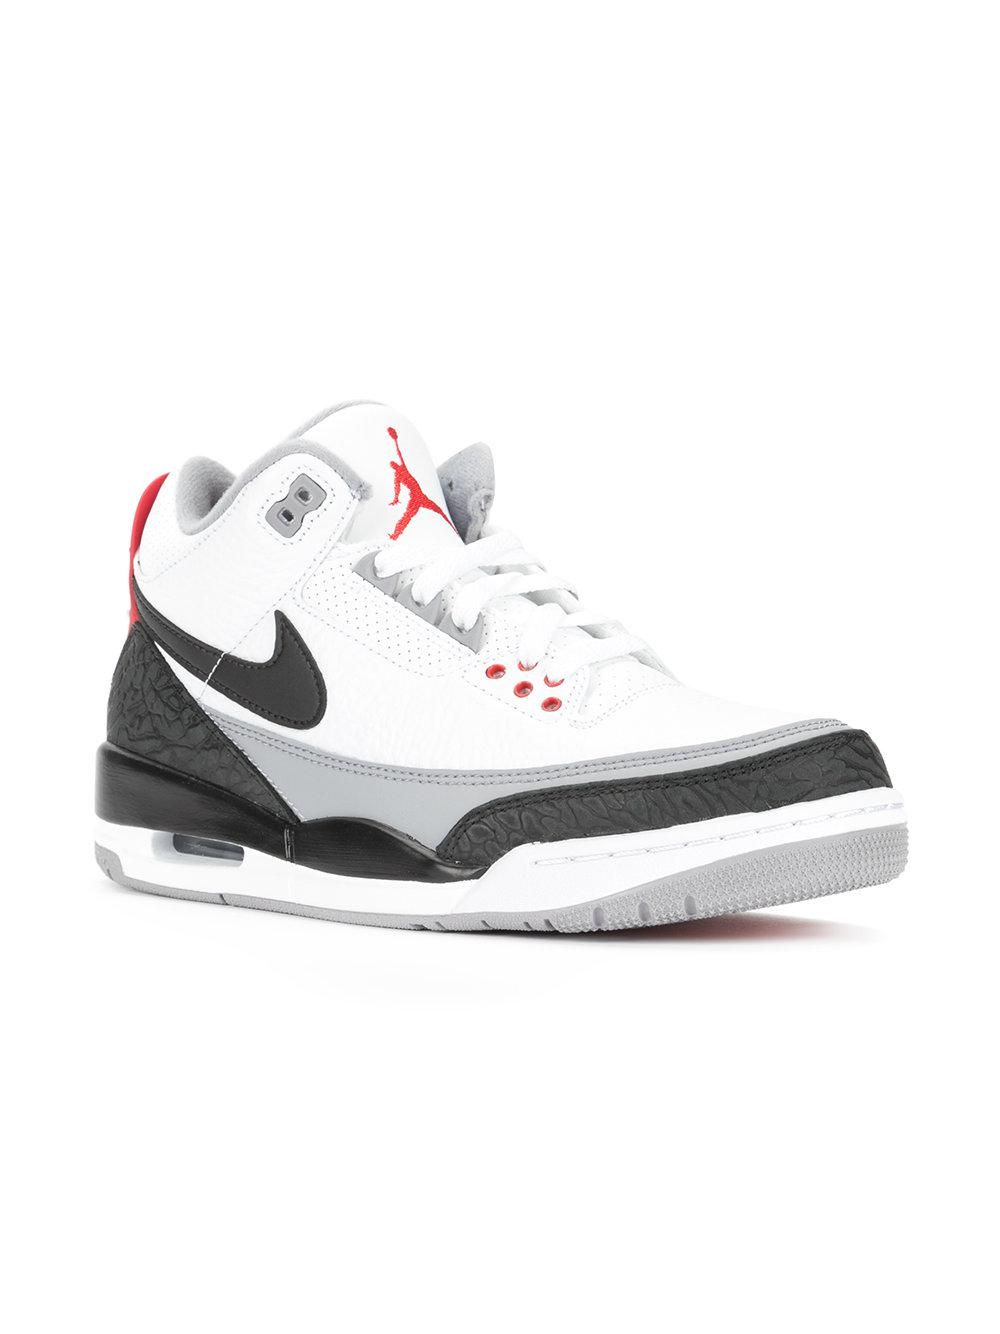 low priced 341a0 f0f0b Nike Jordan 3 Retro Tinker Nrg Sneakers in White for Men - Lyst